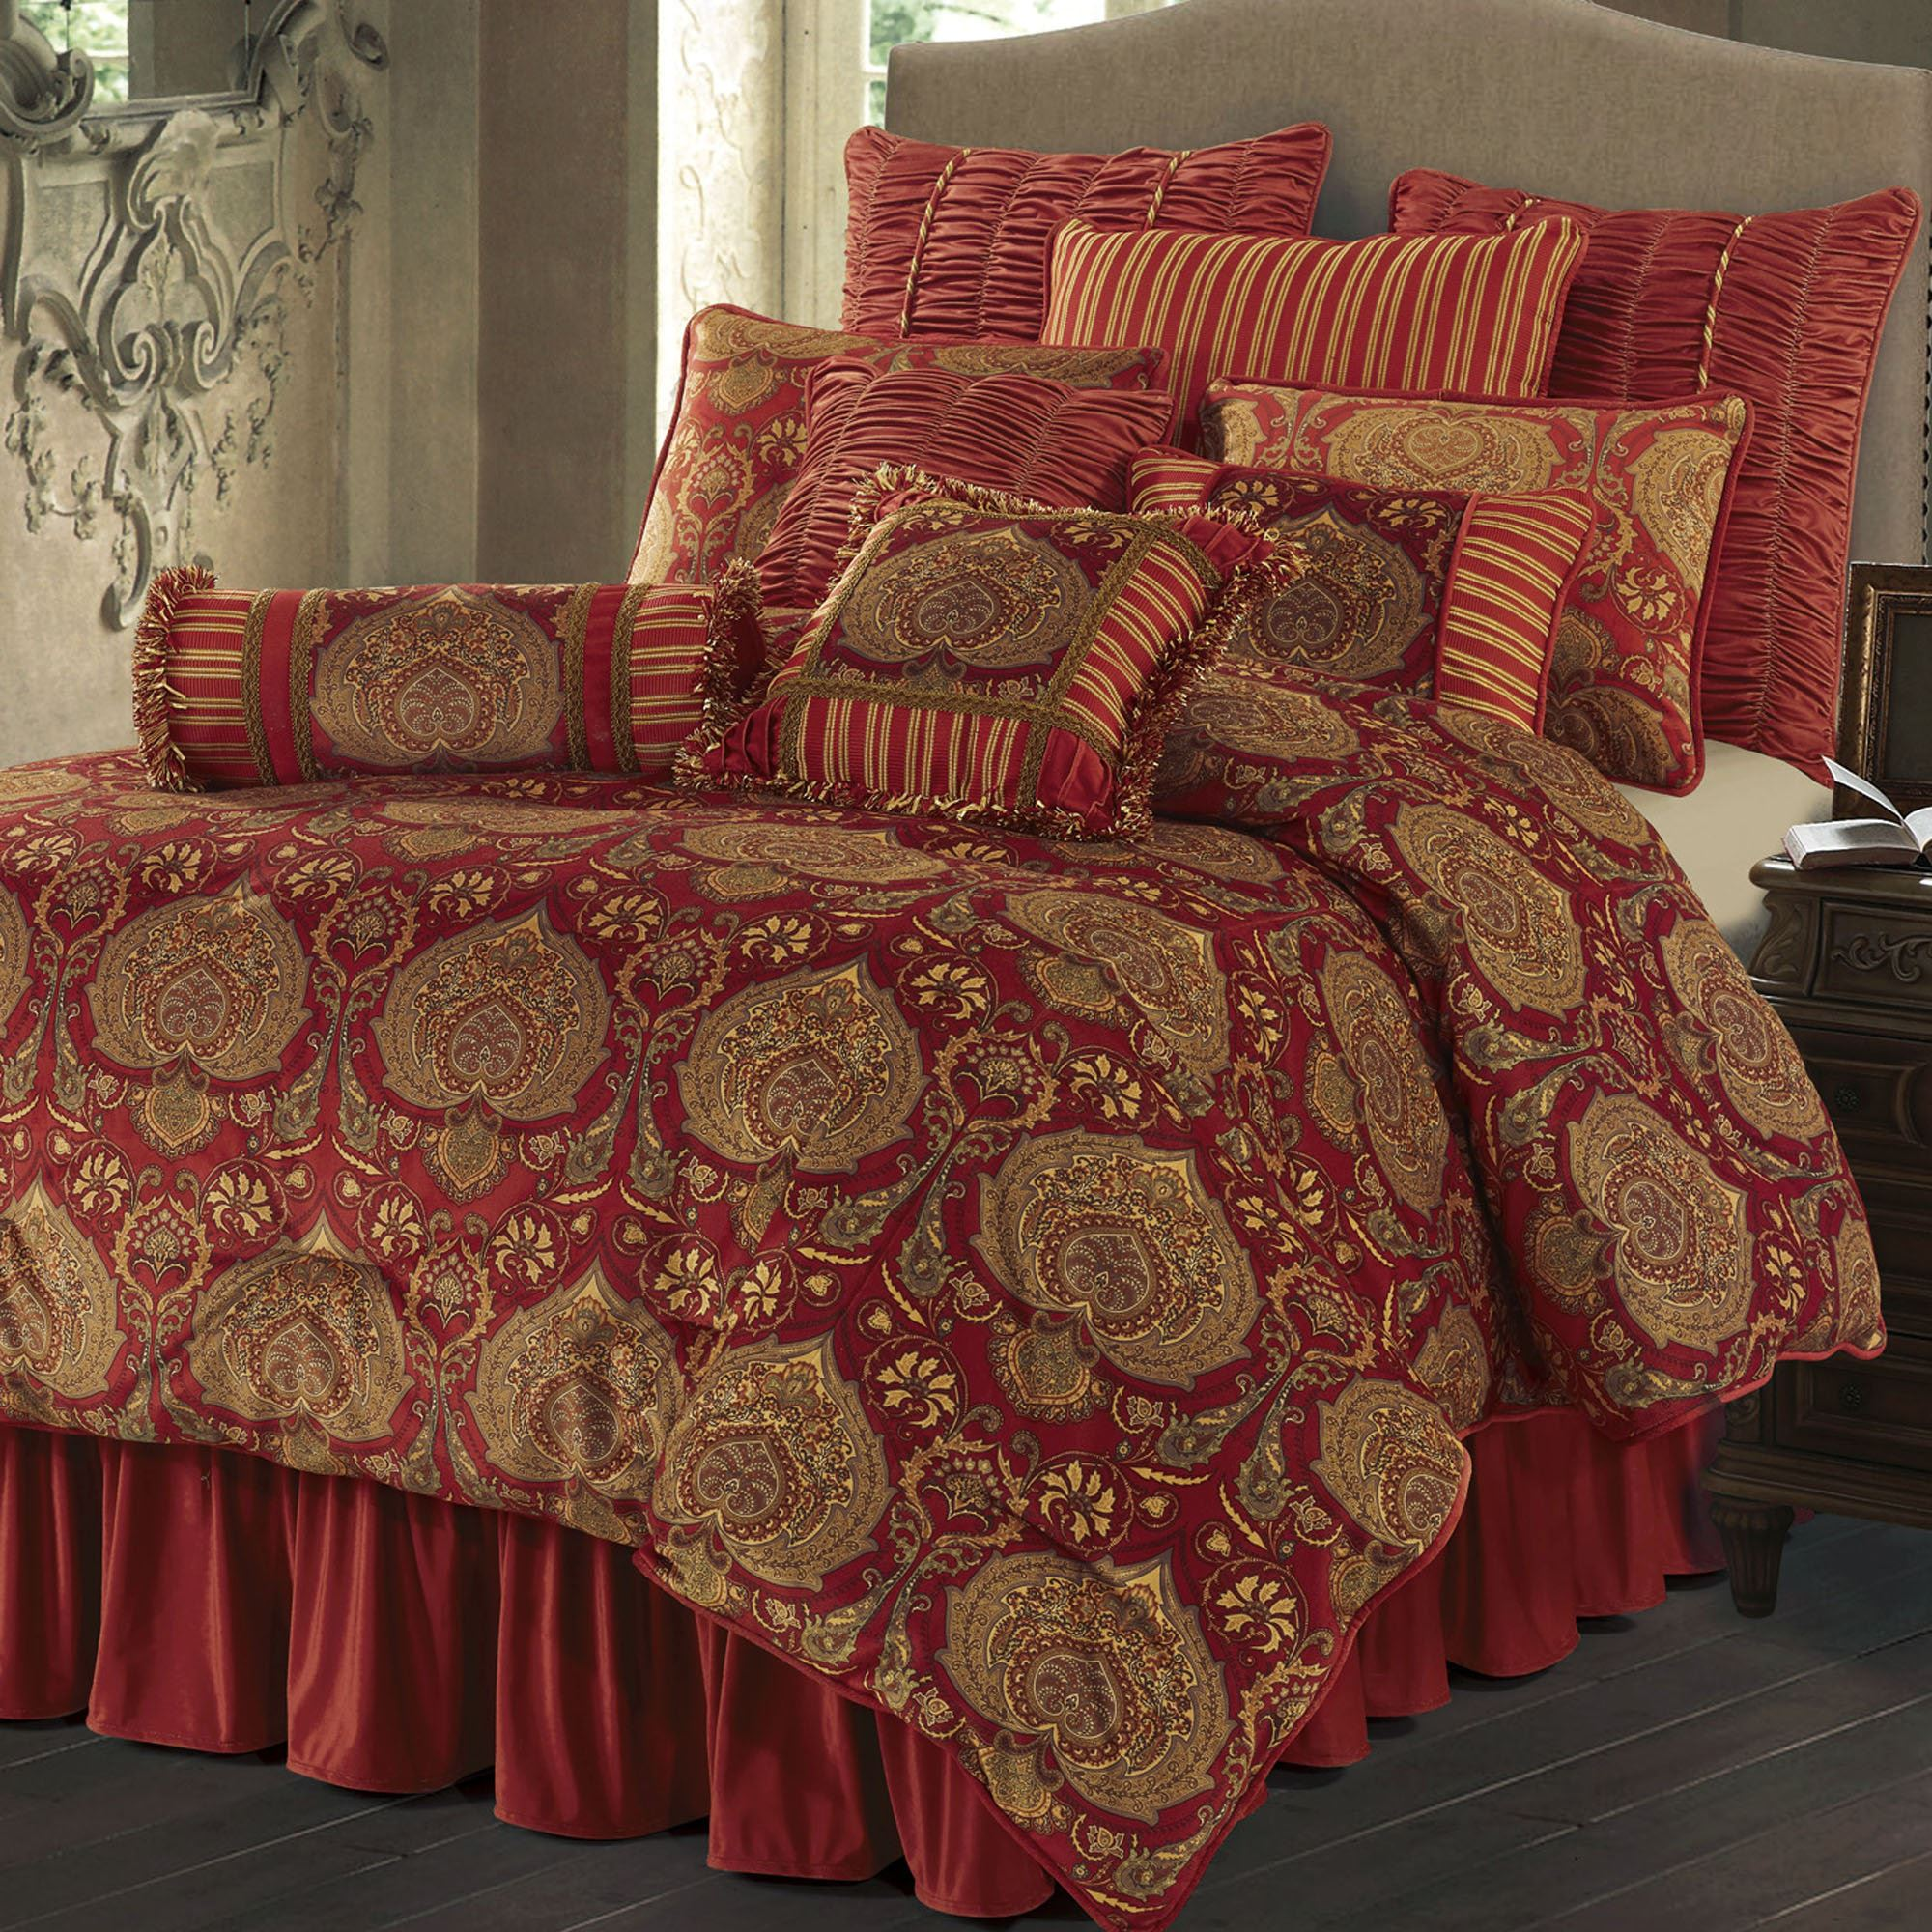 matching design sets red paisley imposing cute fantastic wonderful bedroom decorative purple with curtains girls queen bedding comforter